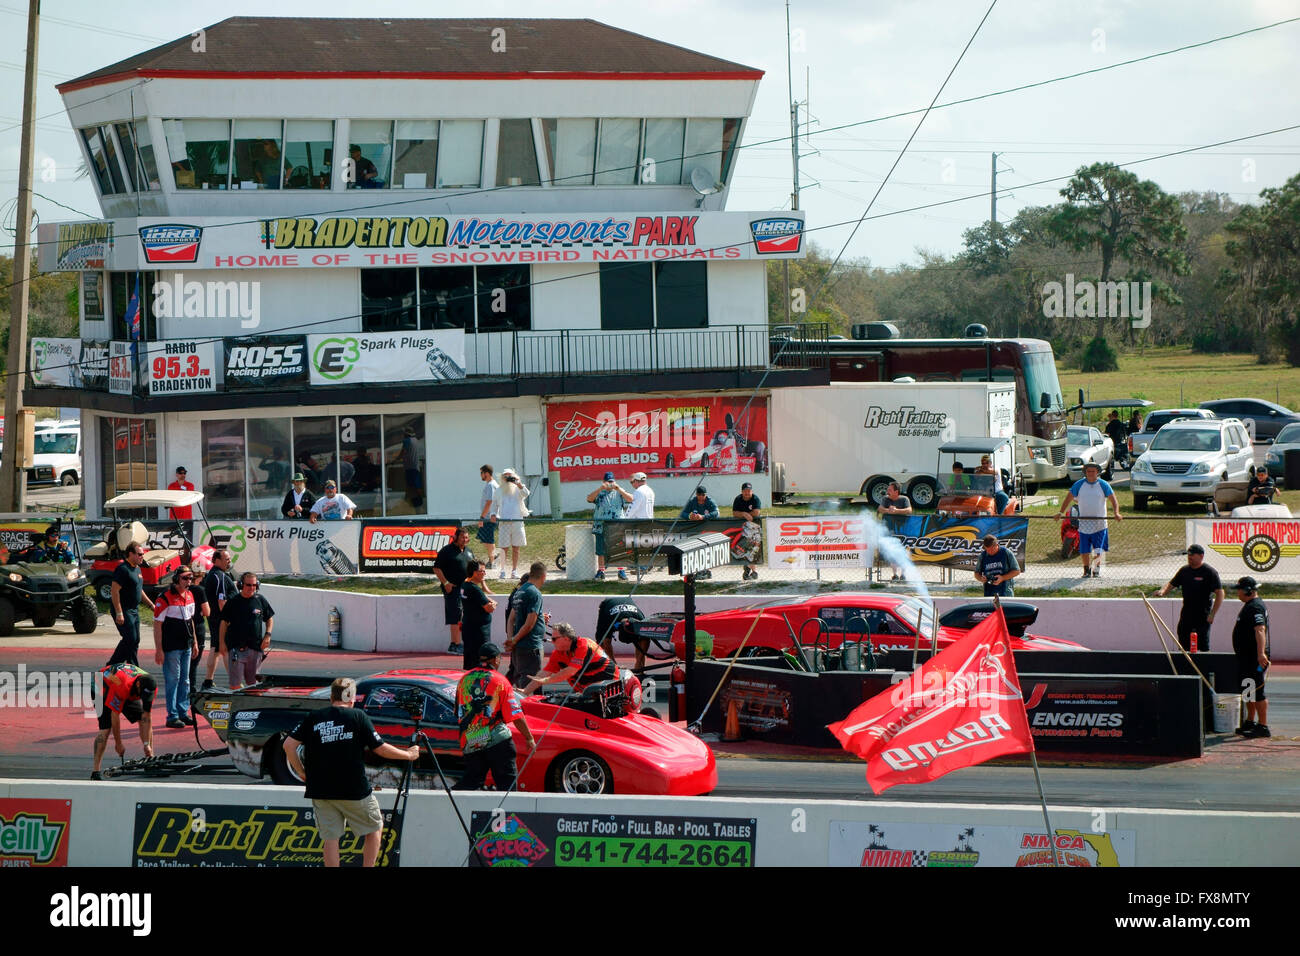 Bradenton Drag Strip >> Bradenton Stock Photos Bradenton Stock Images Alamy